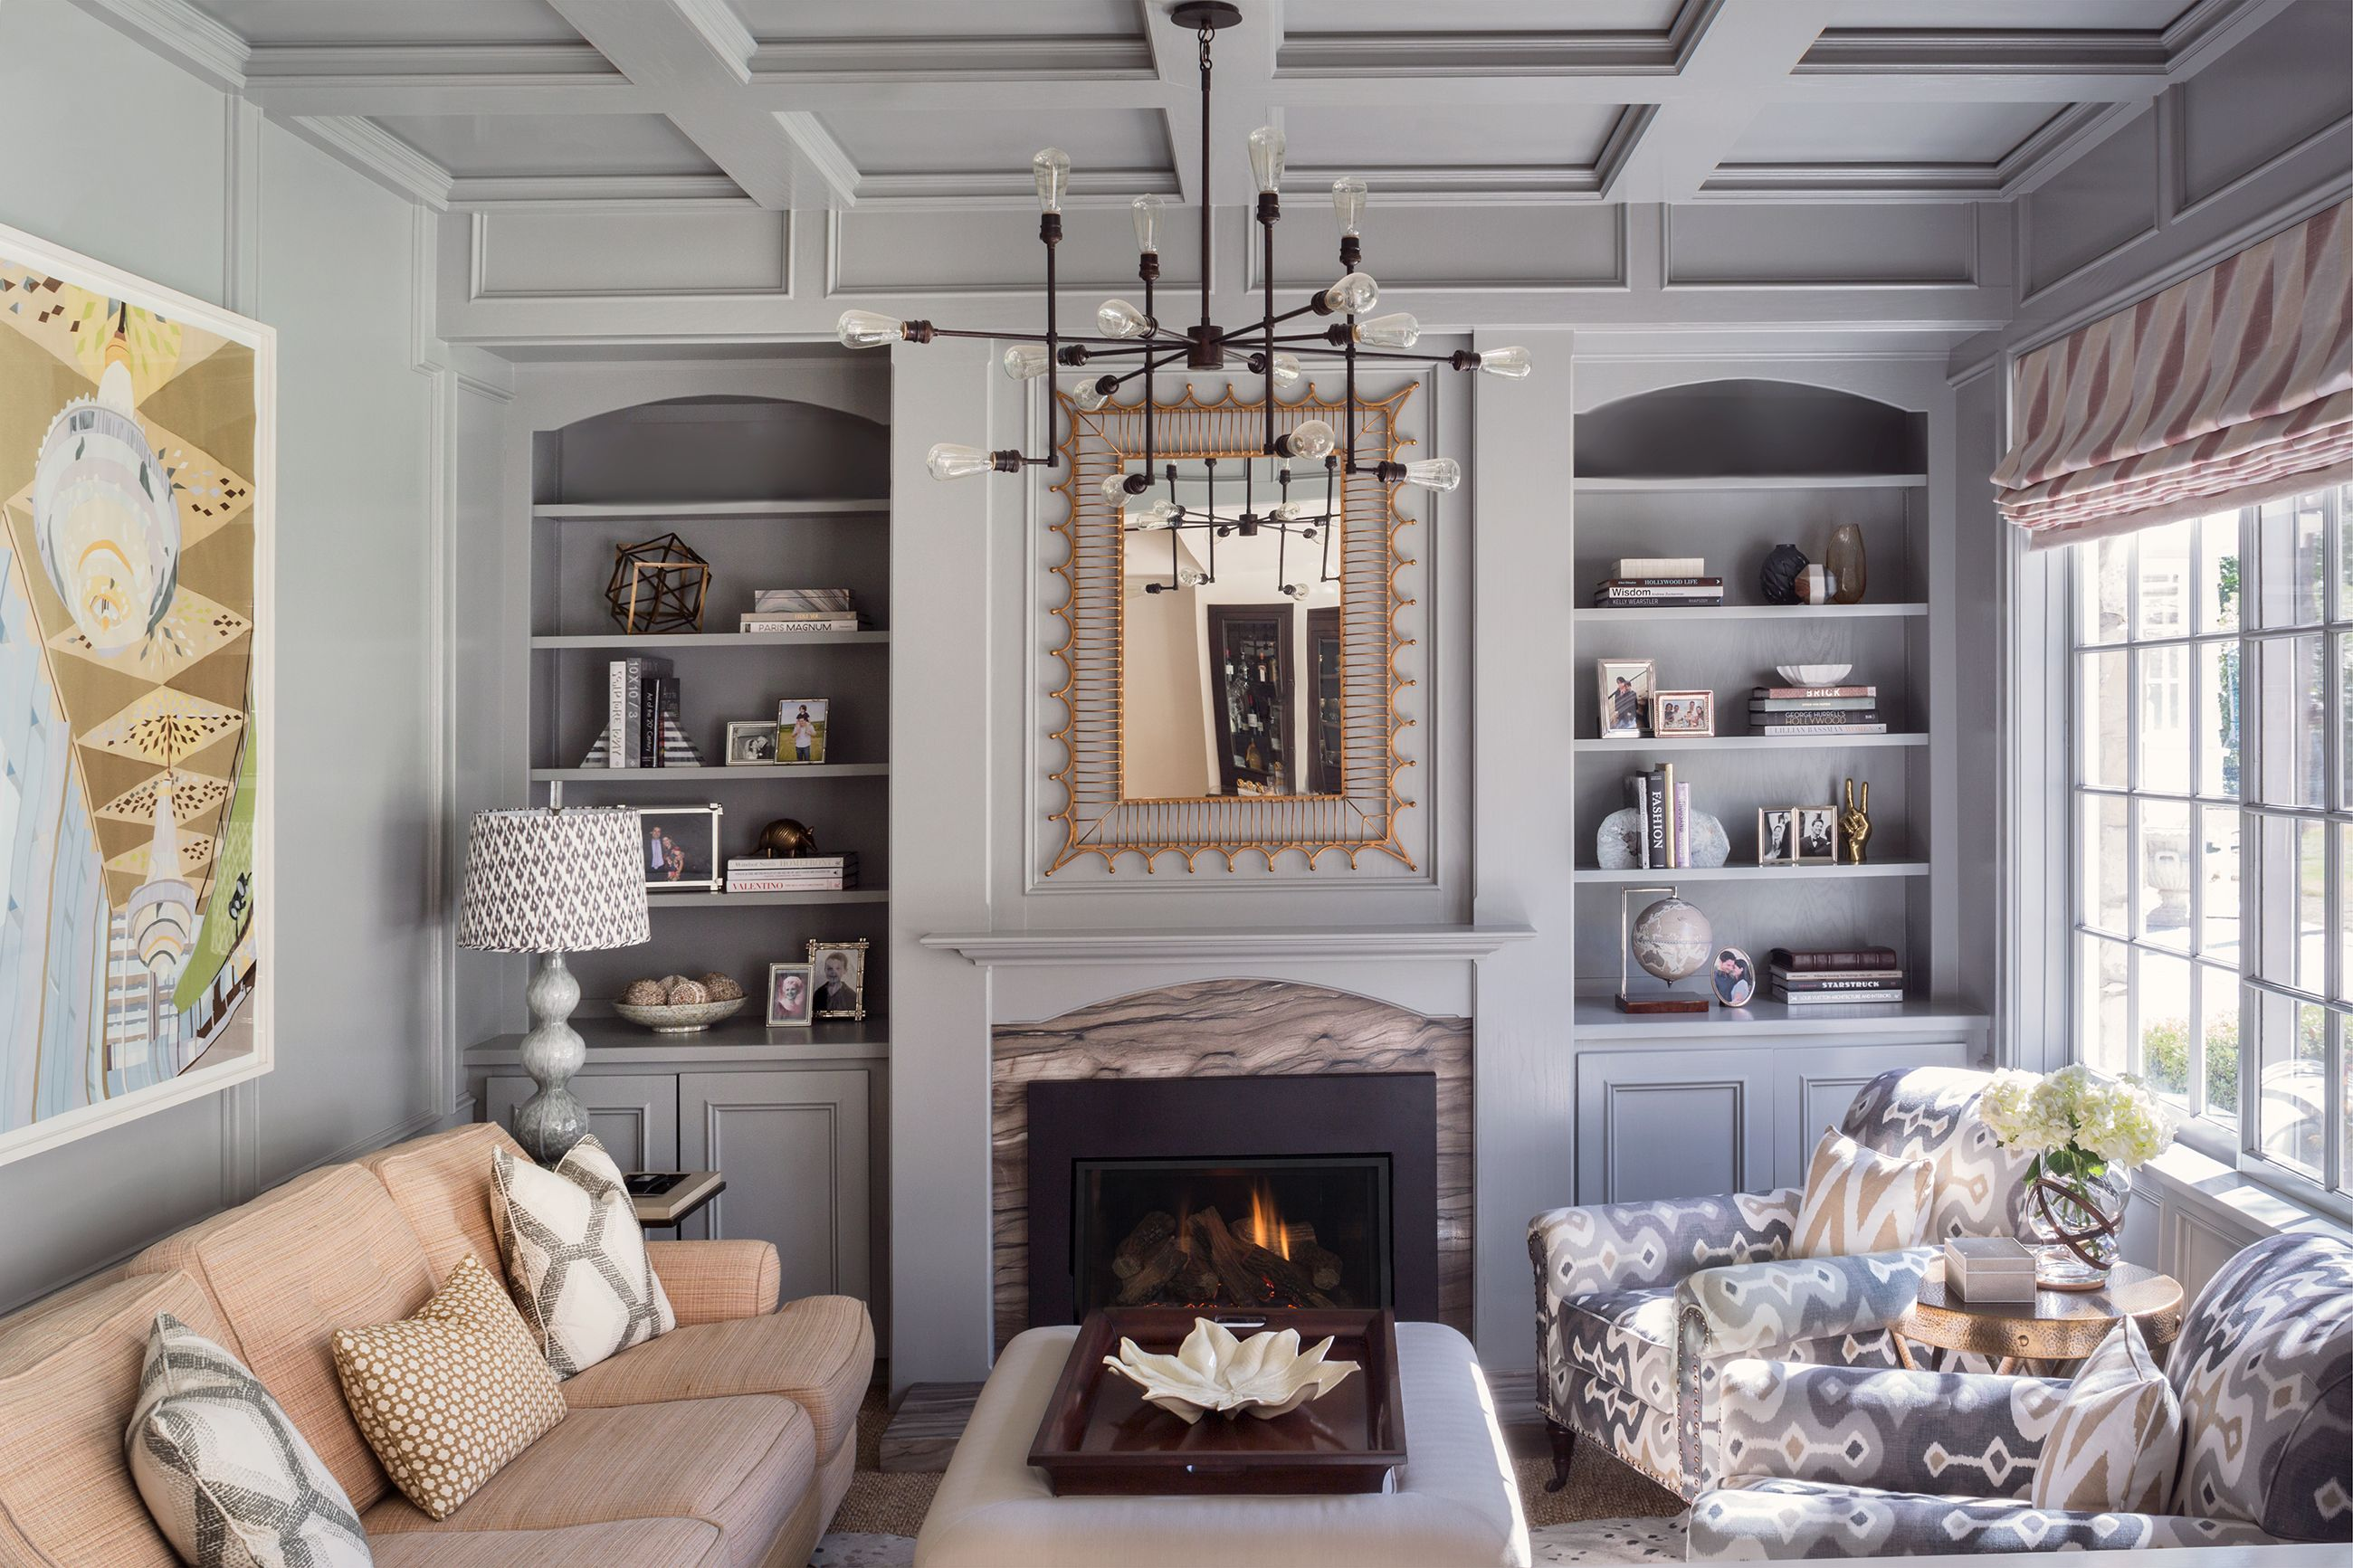 Fireplace Trends 2020.The Design Trends That Will Be In And Out In 2020 What